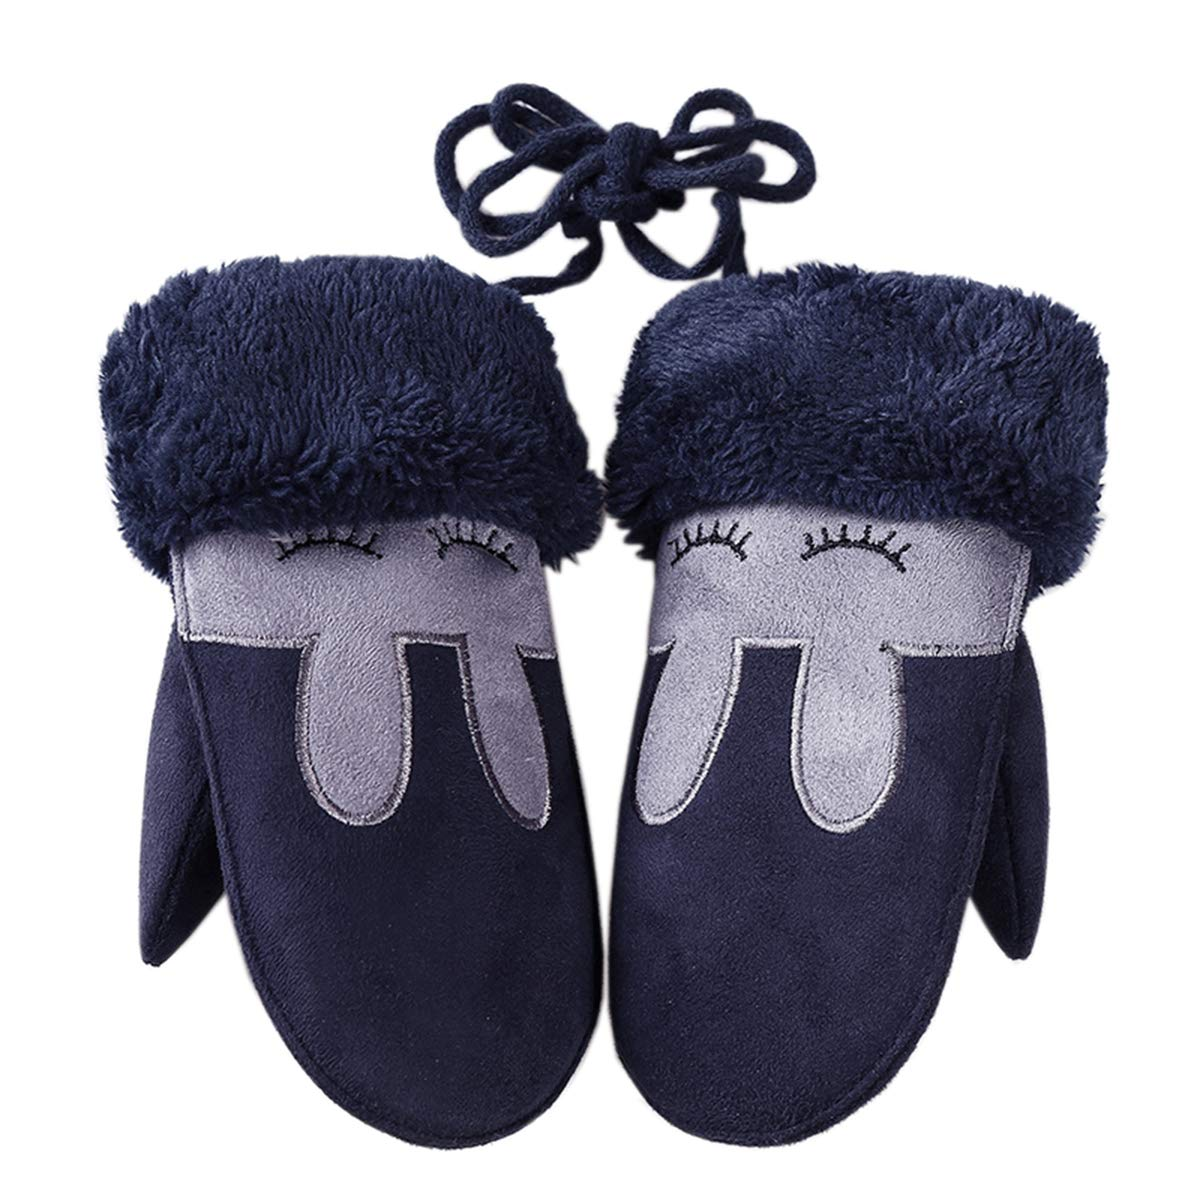 Color 3 W-RHYME Girls Mittens with Strings Warm Thick Faux Suede Gloves